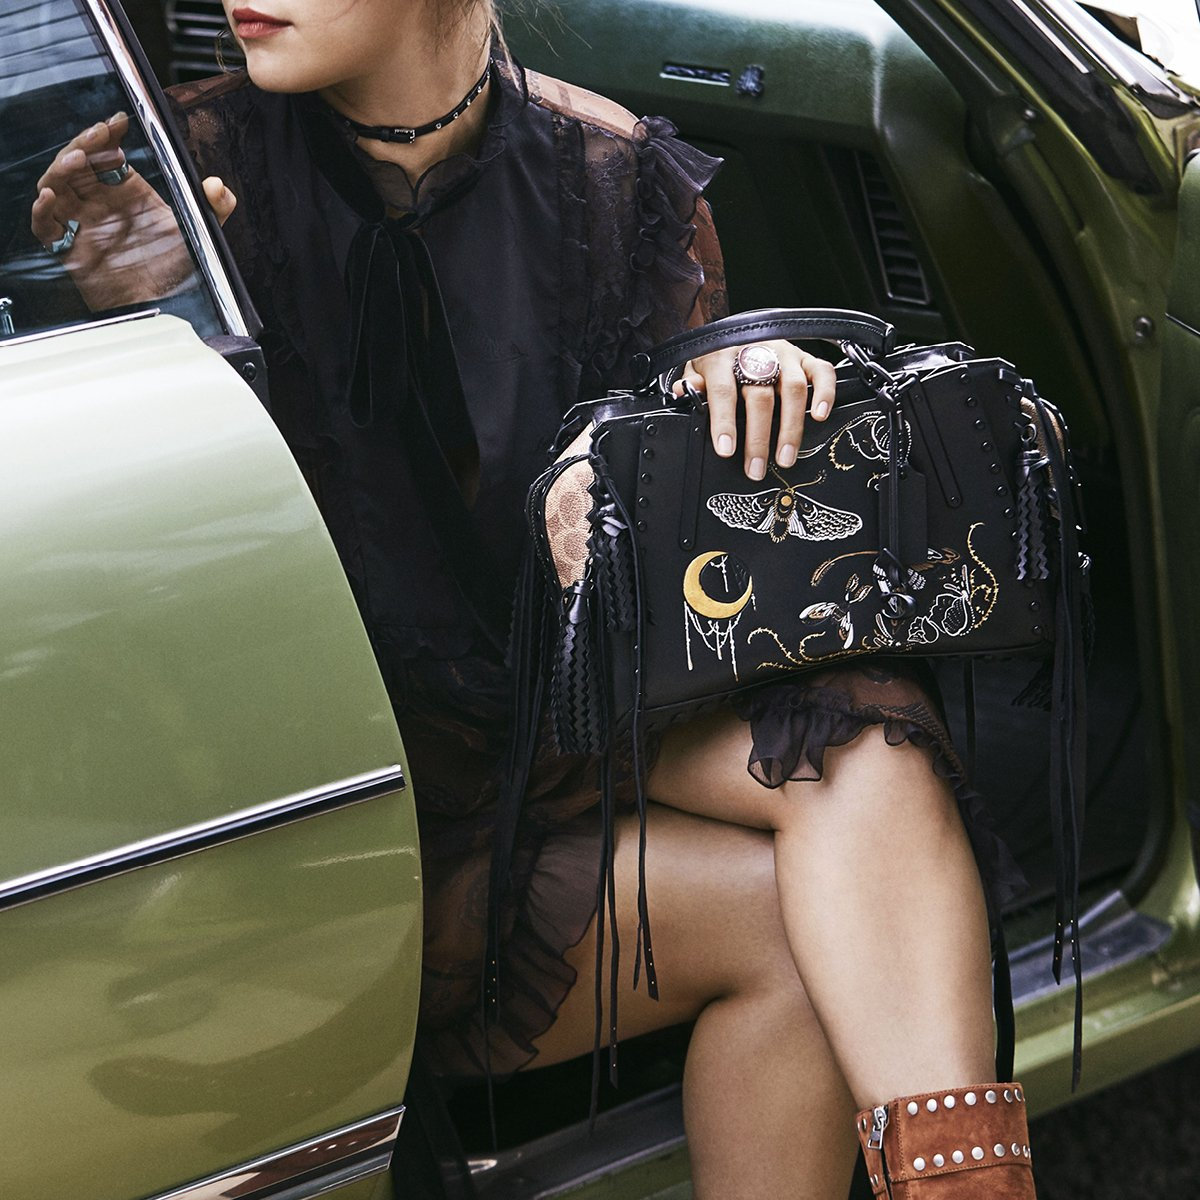 Look who's pulling up for fall... #CoachxSelena #CoachFW18 #CoachNY